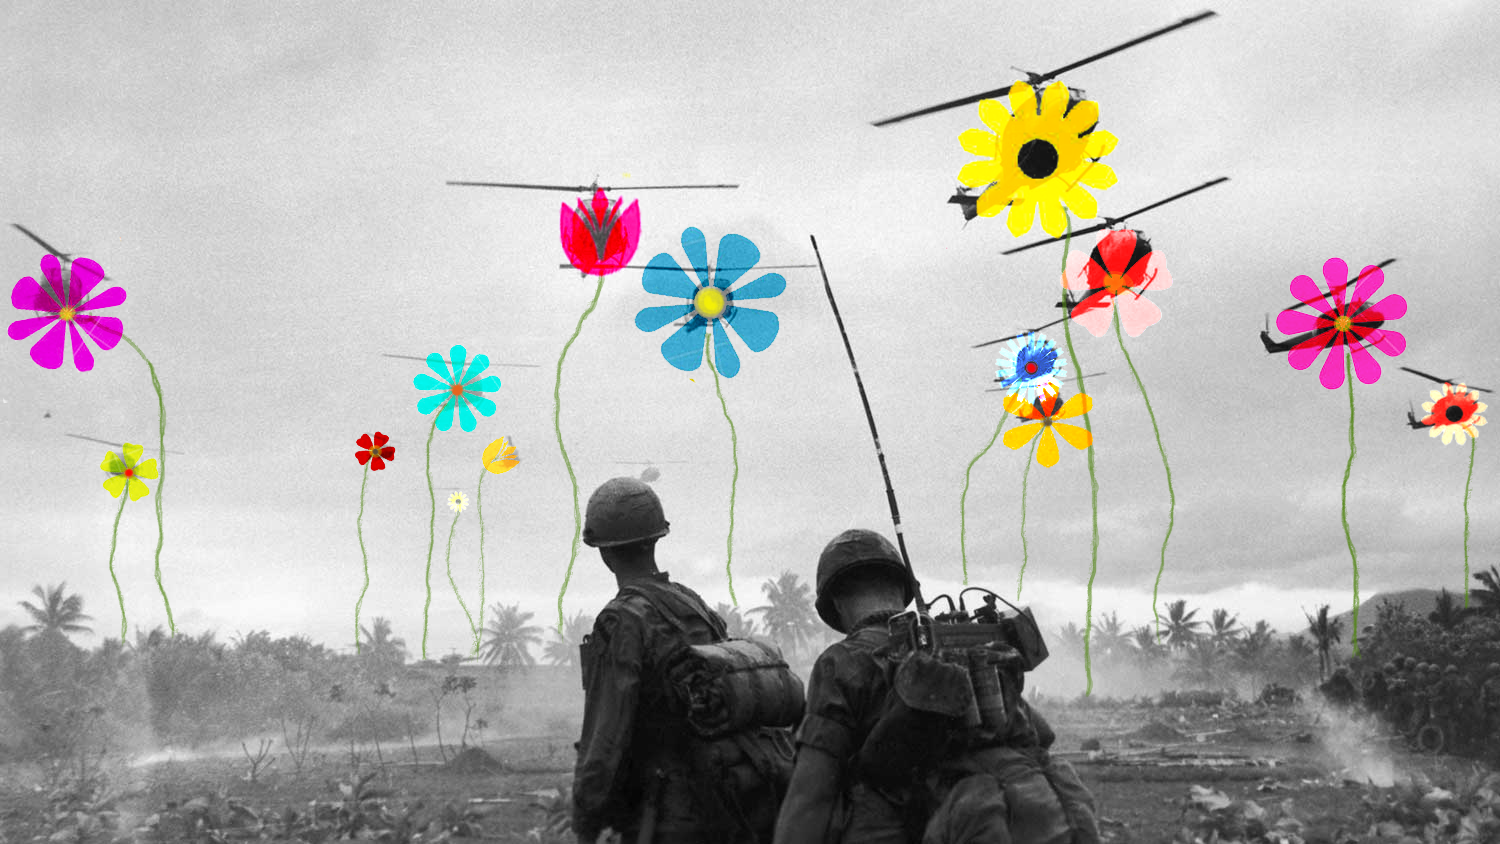 the role of the united states in the vietnam war Vietnam war was a cold war military conflict that occurred in vietnam, laos, and cambodia from november 1, , to april 30, 1975 when saigon fell this war followed the first indochina war and was fought between north vietnam, supported by its communist allies, and the government of south vietnam, supported by the united states and other.